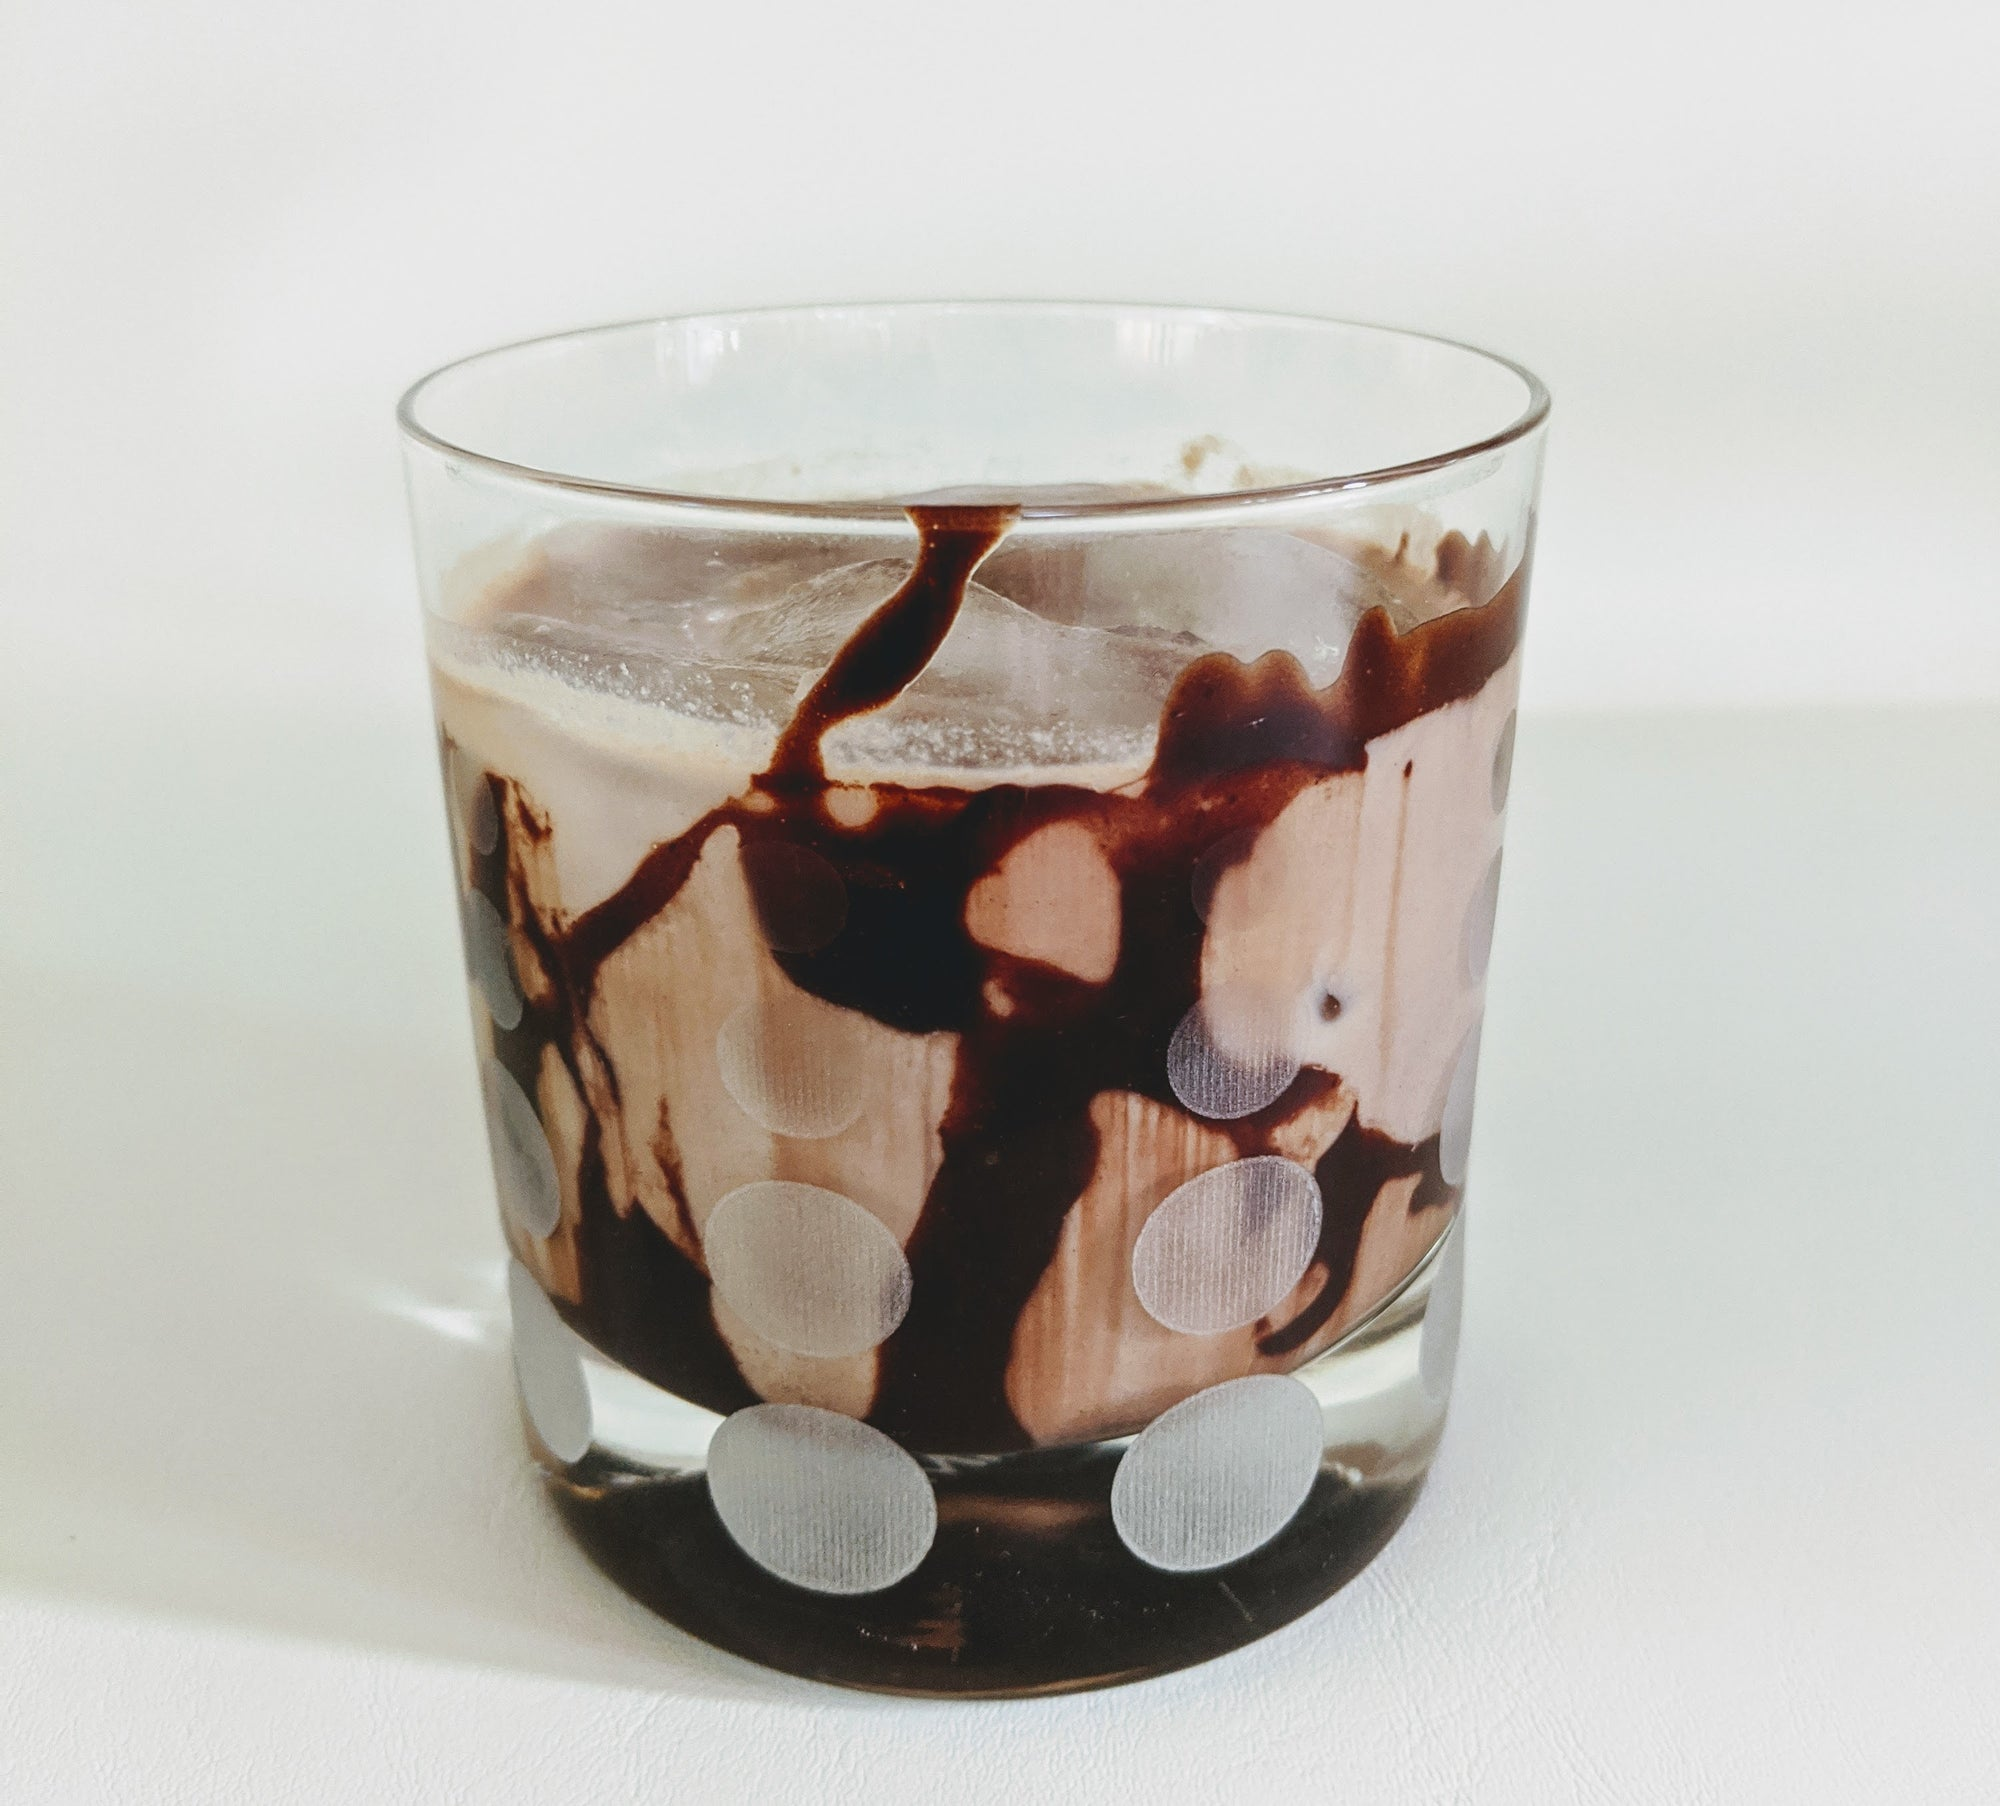 Sundaes Best Hot Fudge Mocha Delight